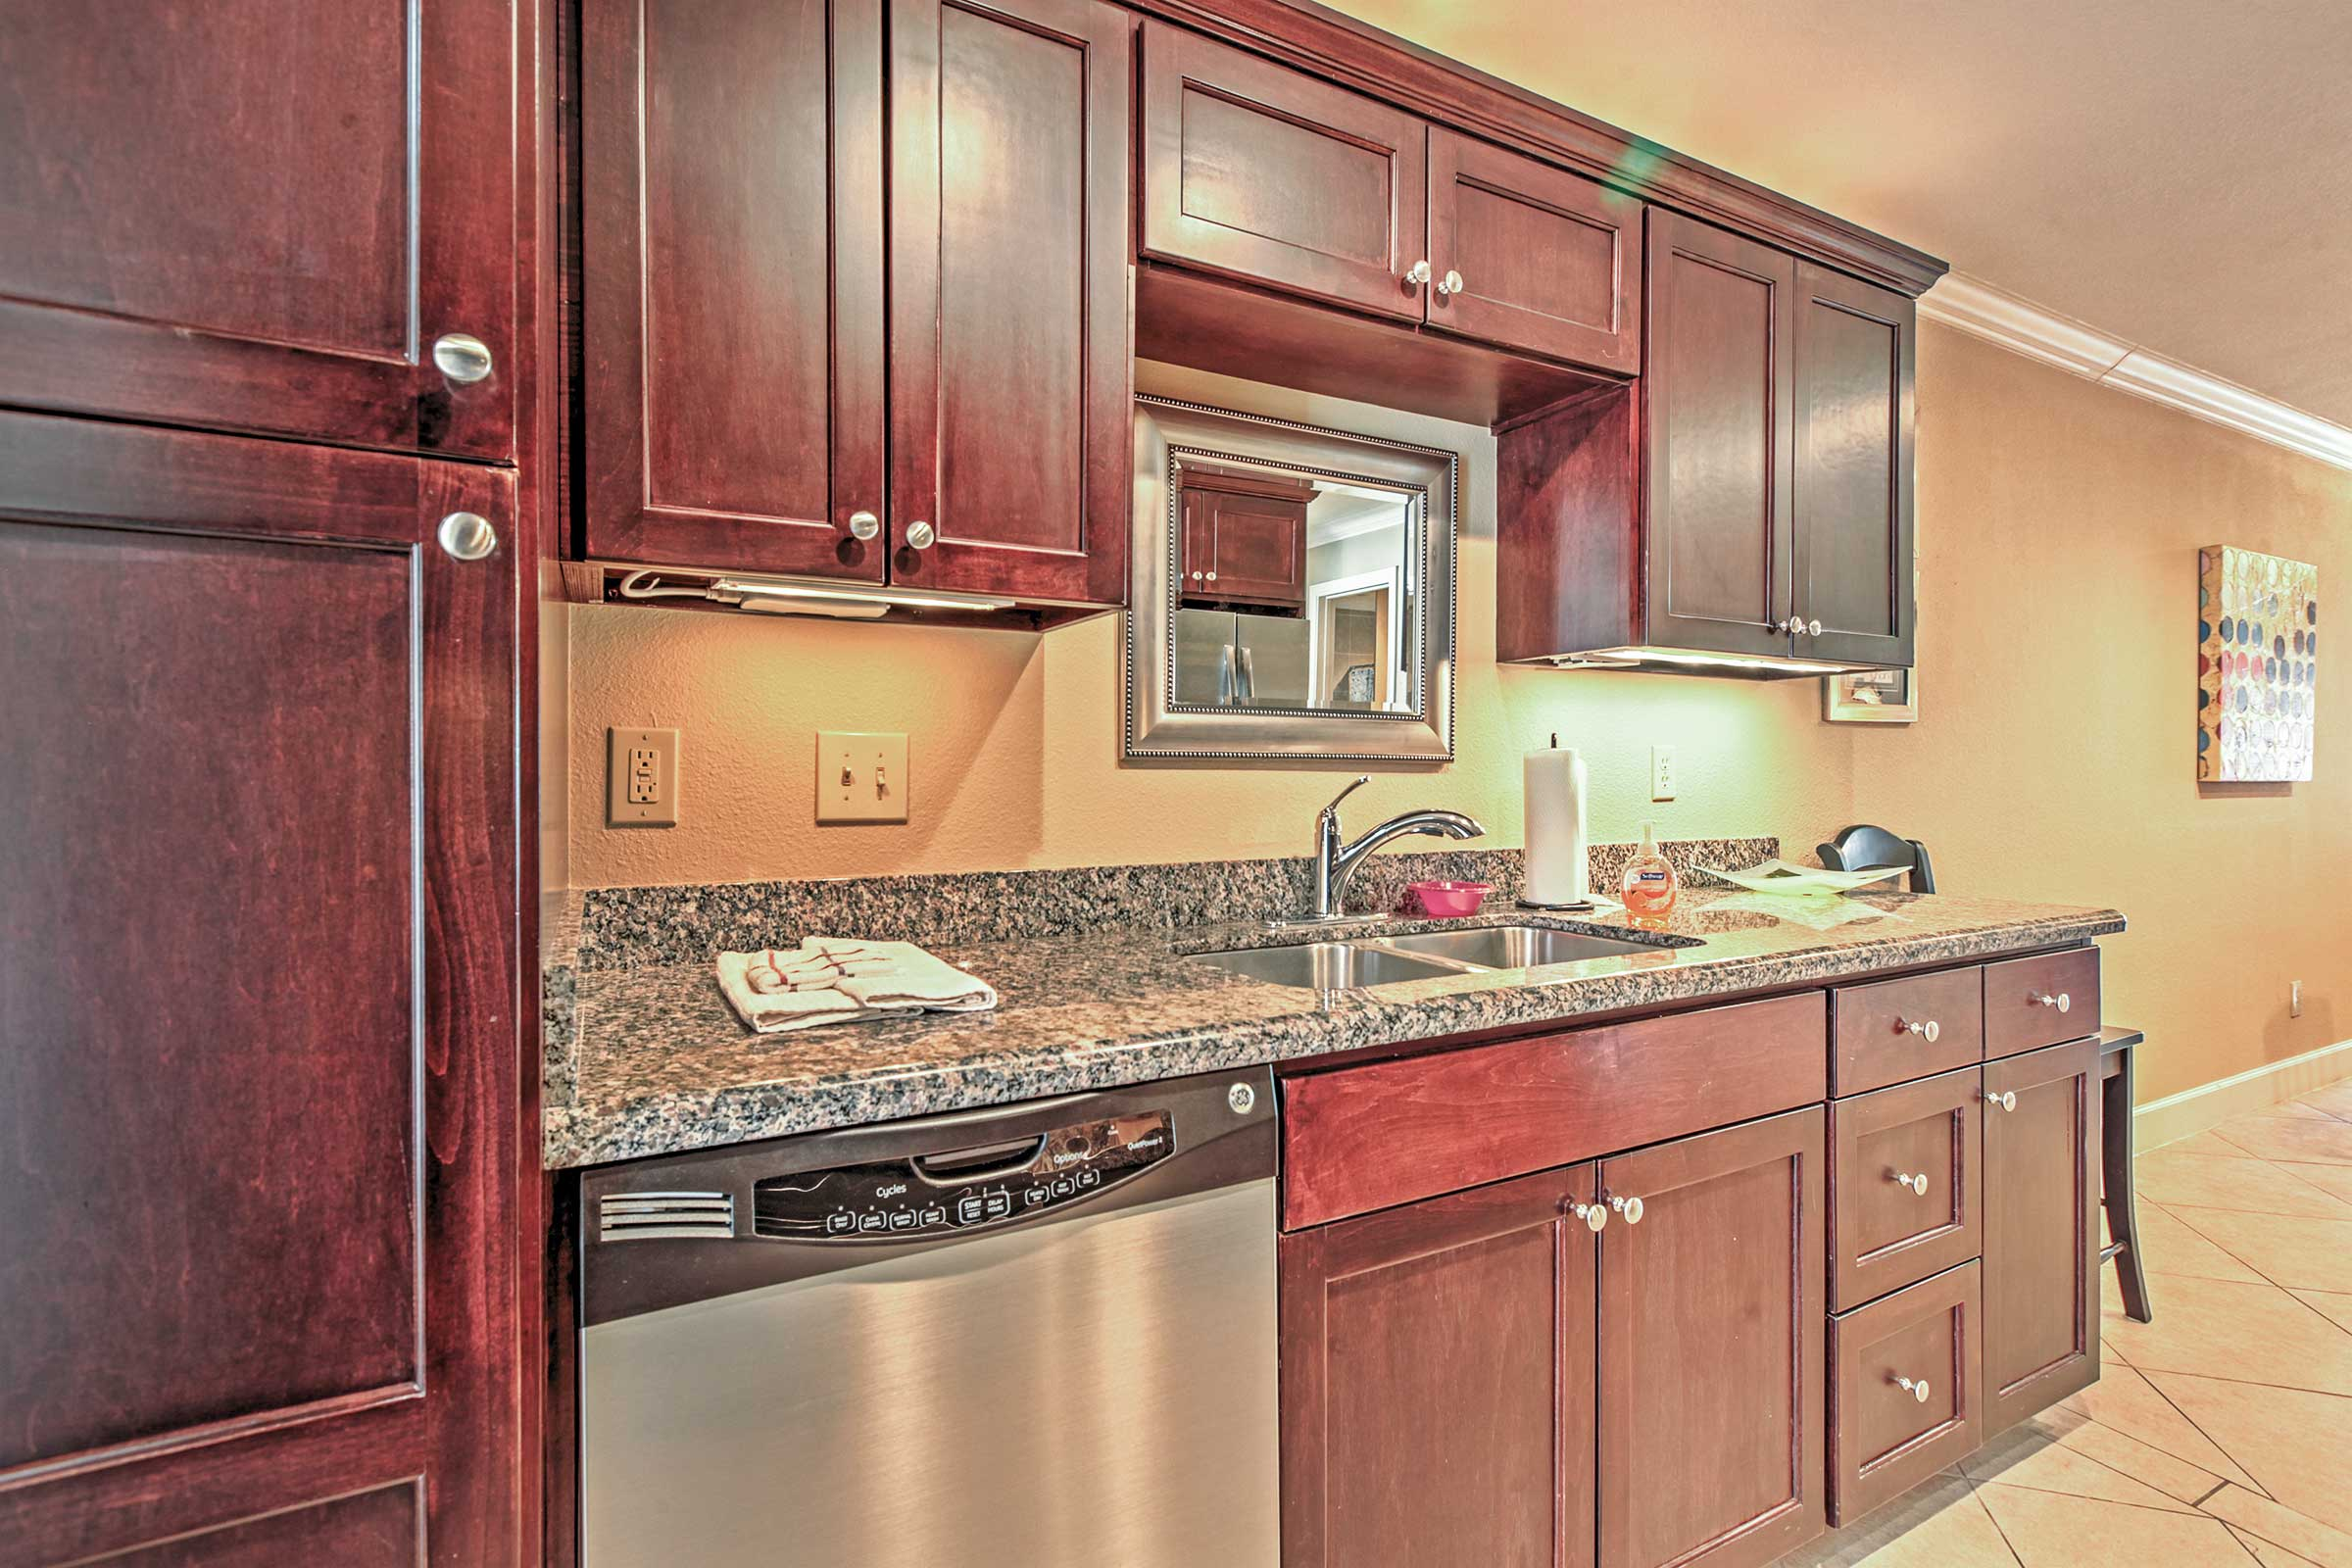 Prepare a culinary treat in the fully equipped kitchen.